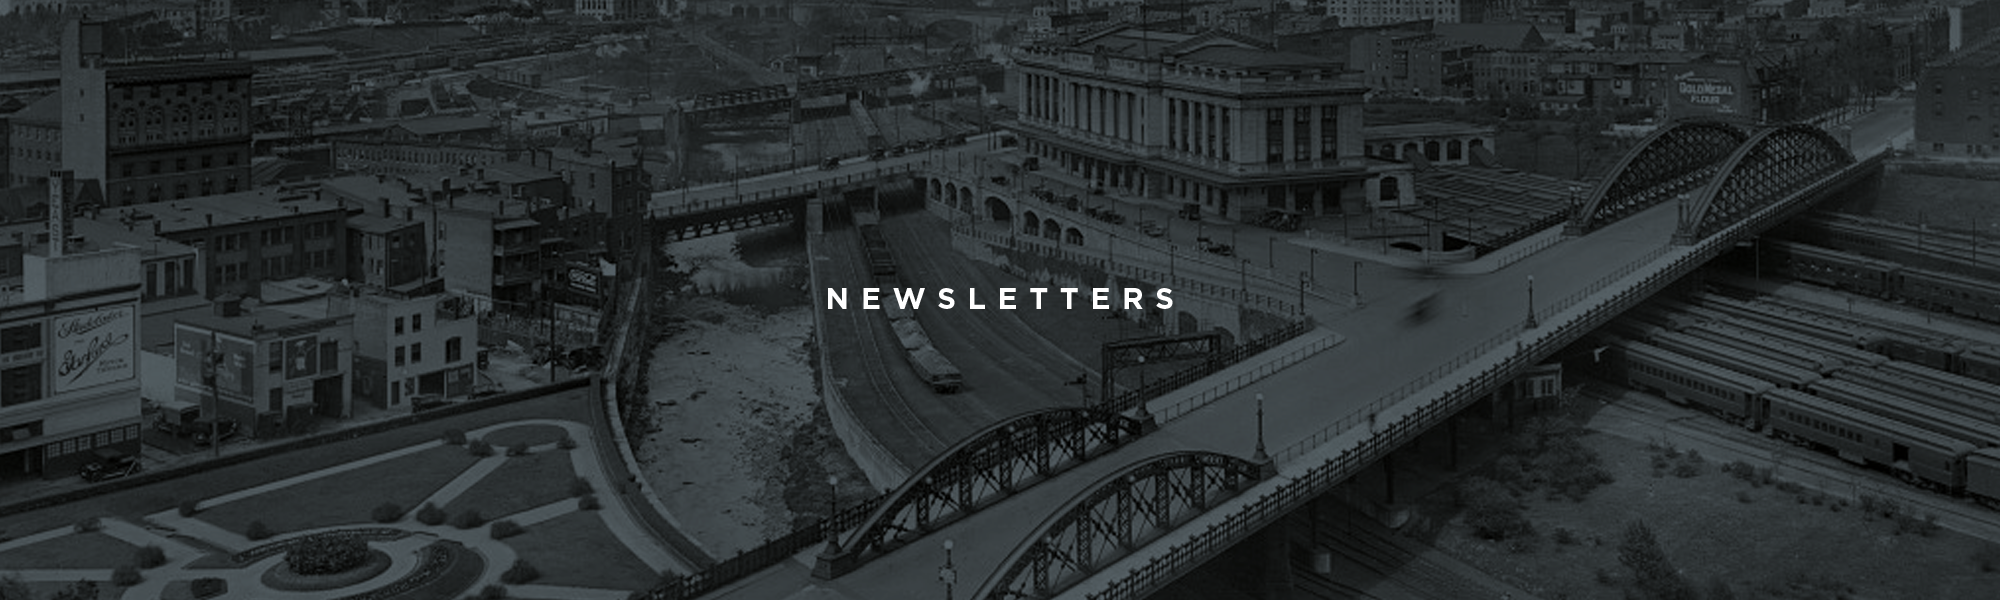 MVBA_Headers_Newsletters